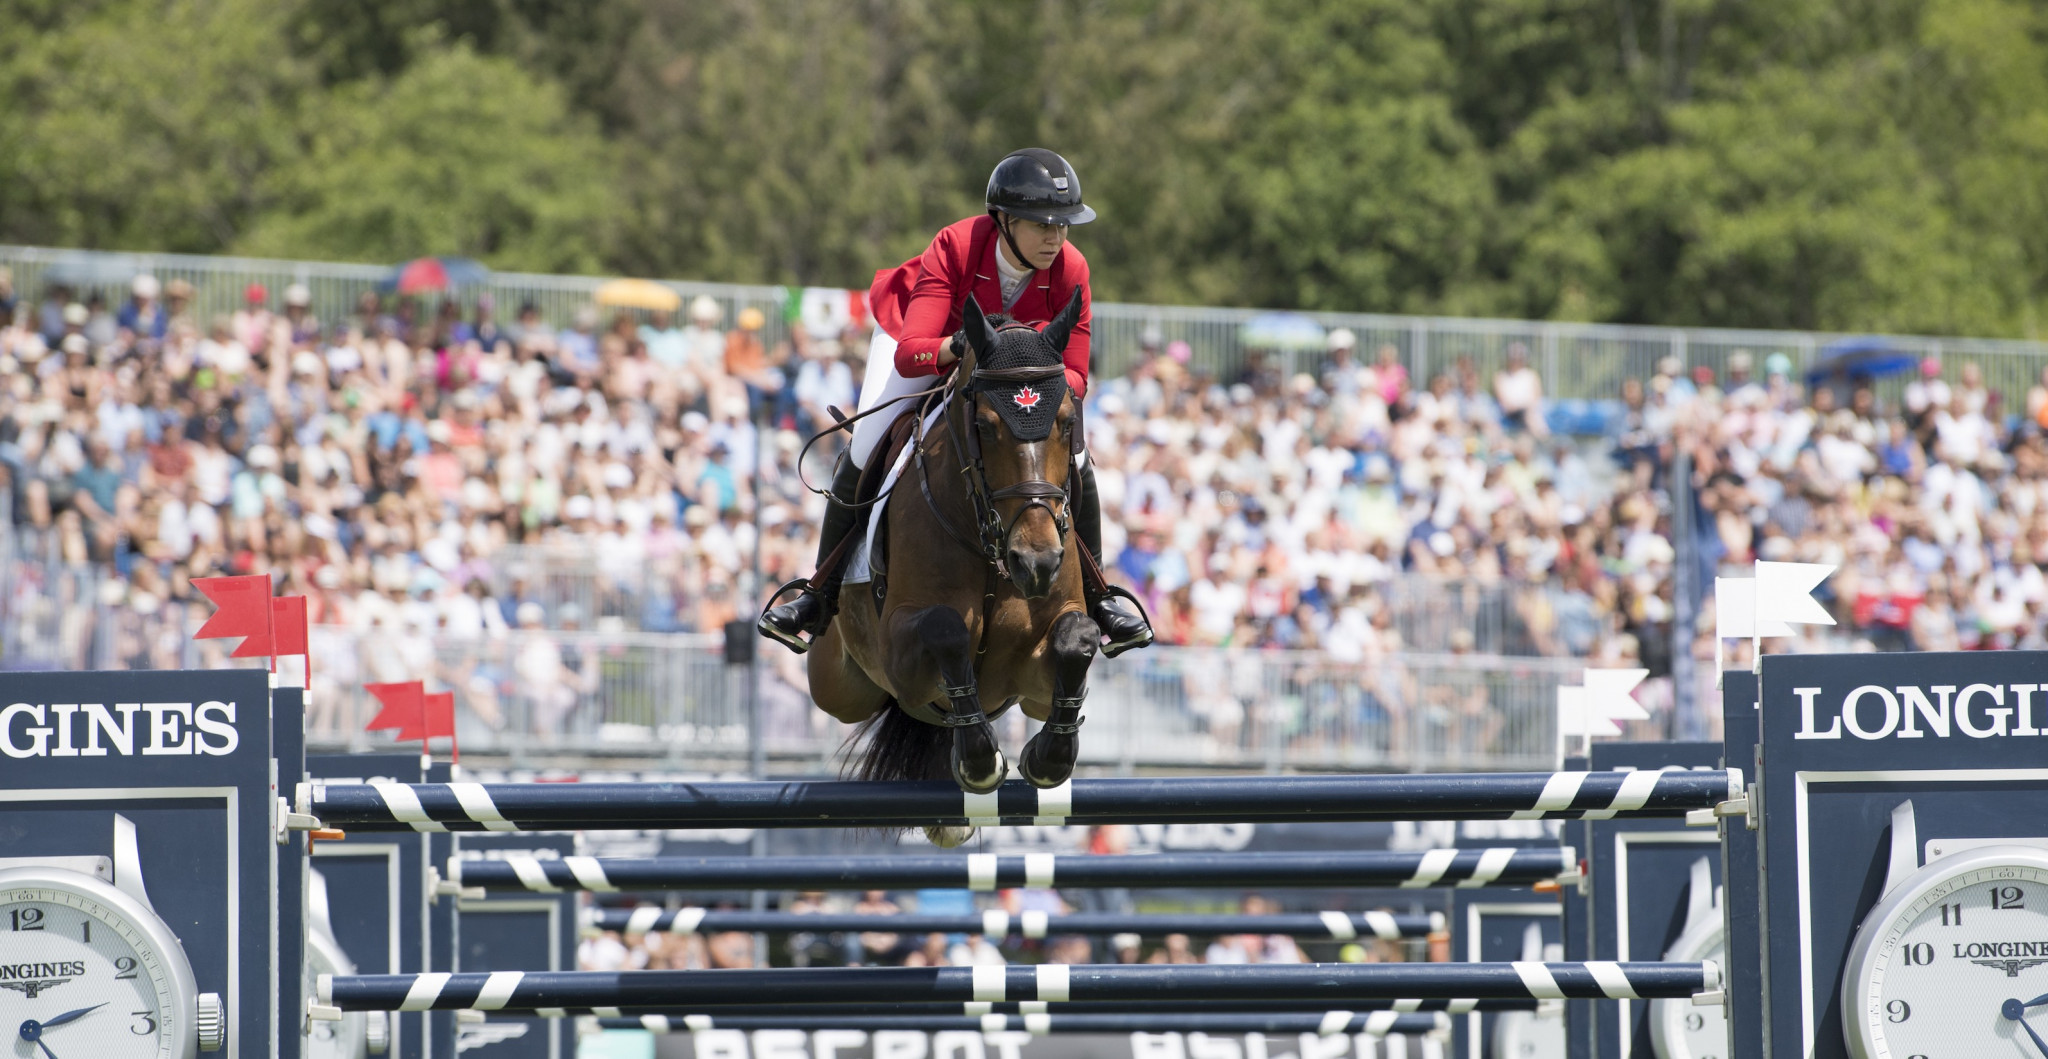 Canada triumph at home FEI Jumping Nations Cup but miss out on place in final